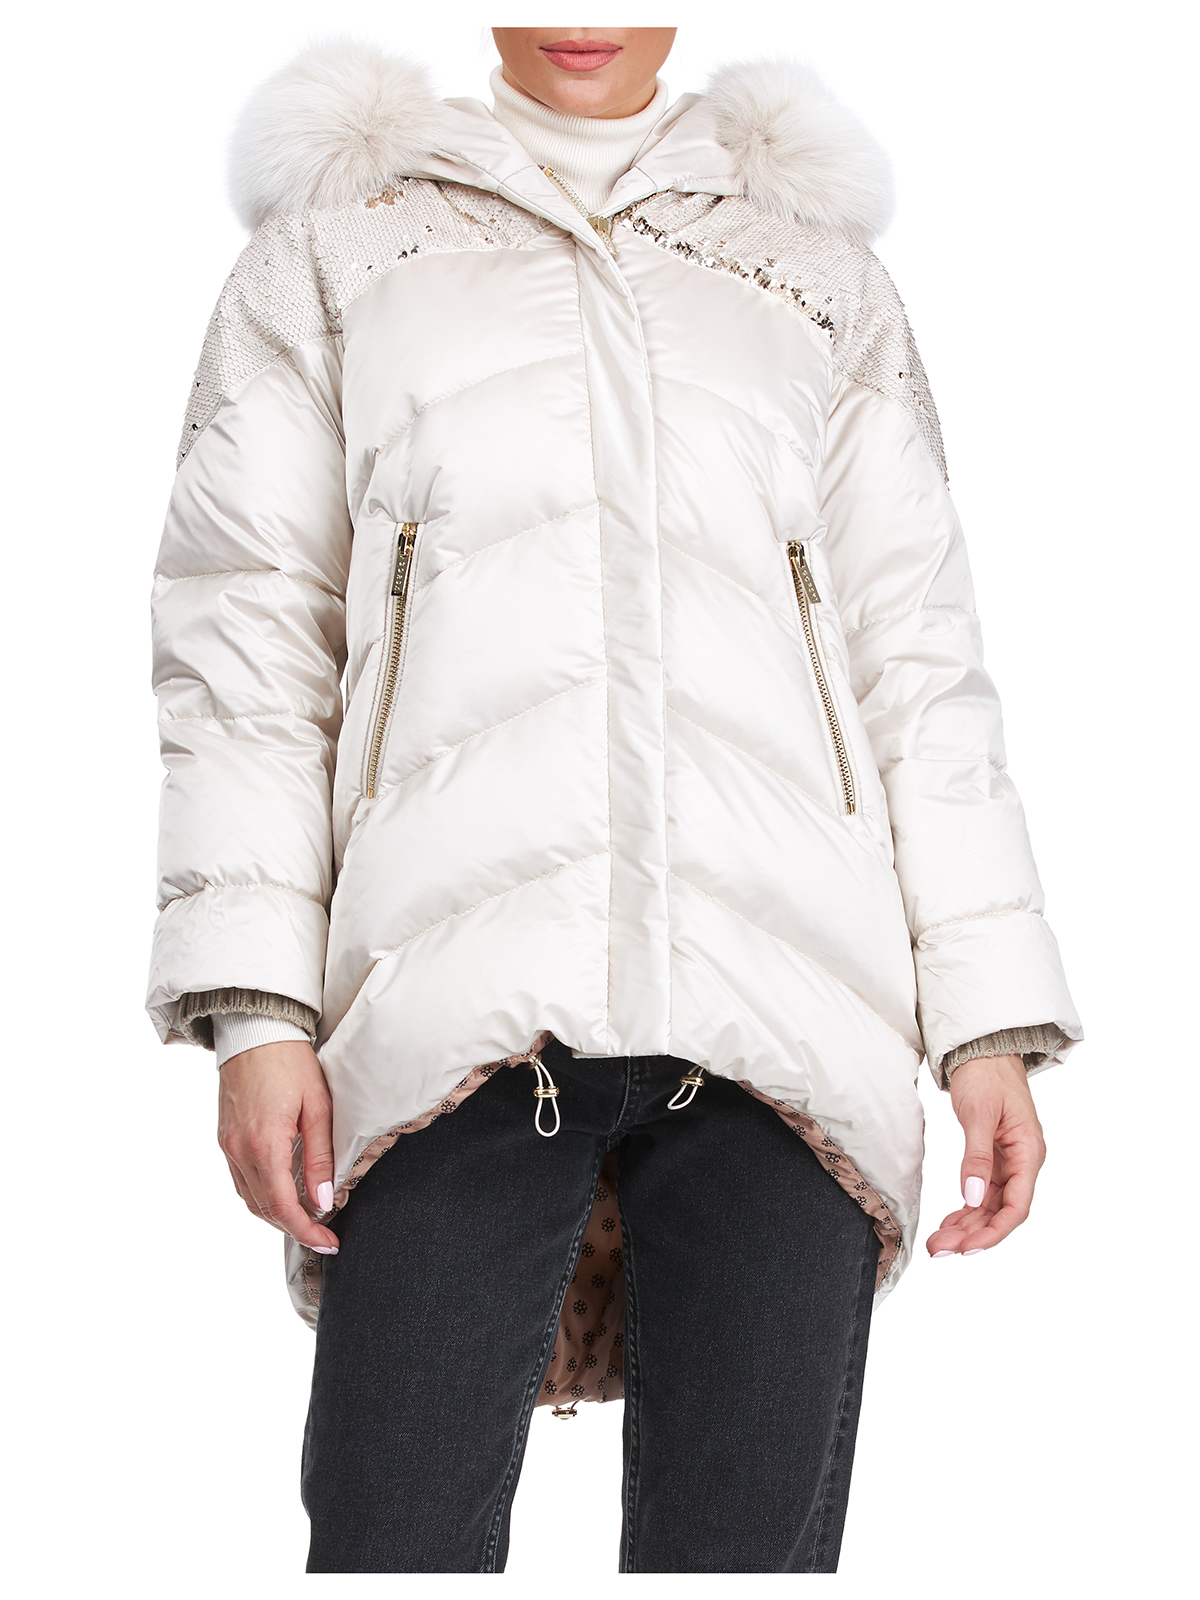 Gorski Woman's Beige Apres-Ski Jacket with Detachable Fox Fur Hood